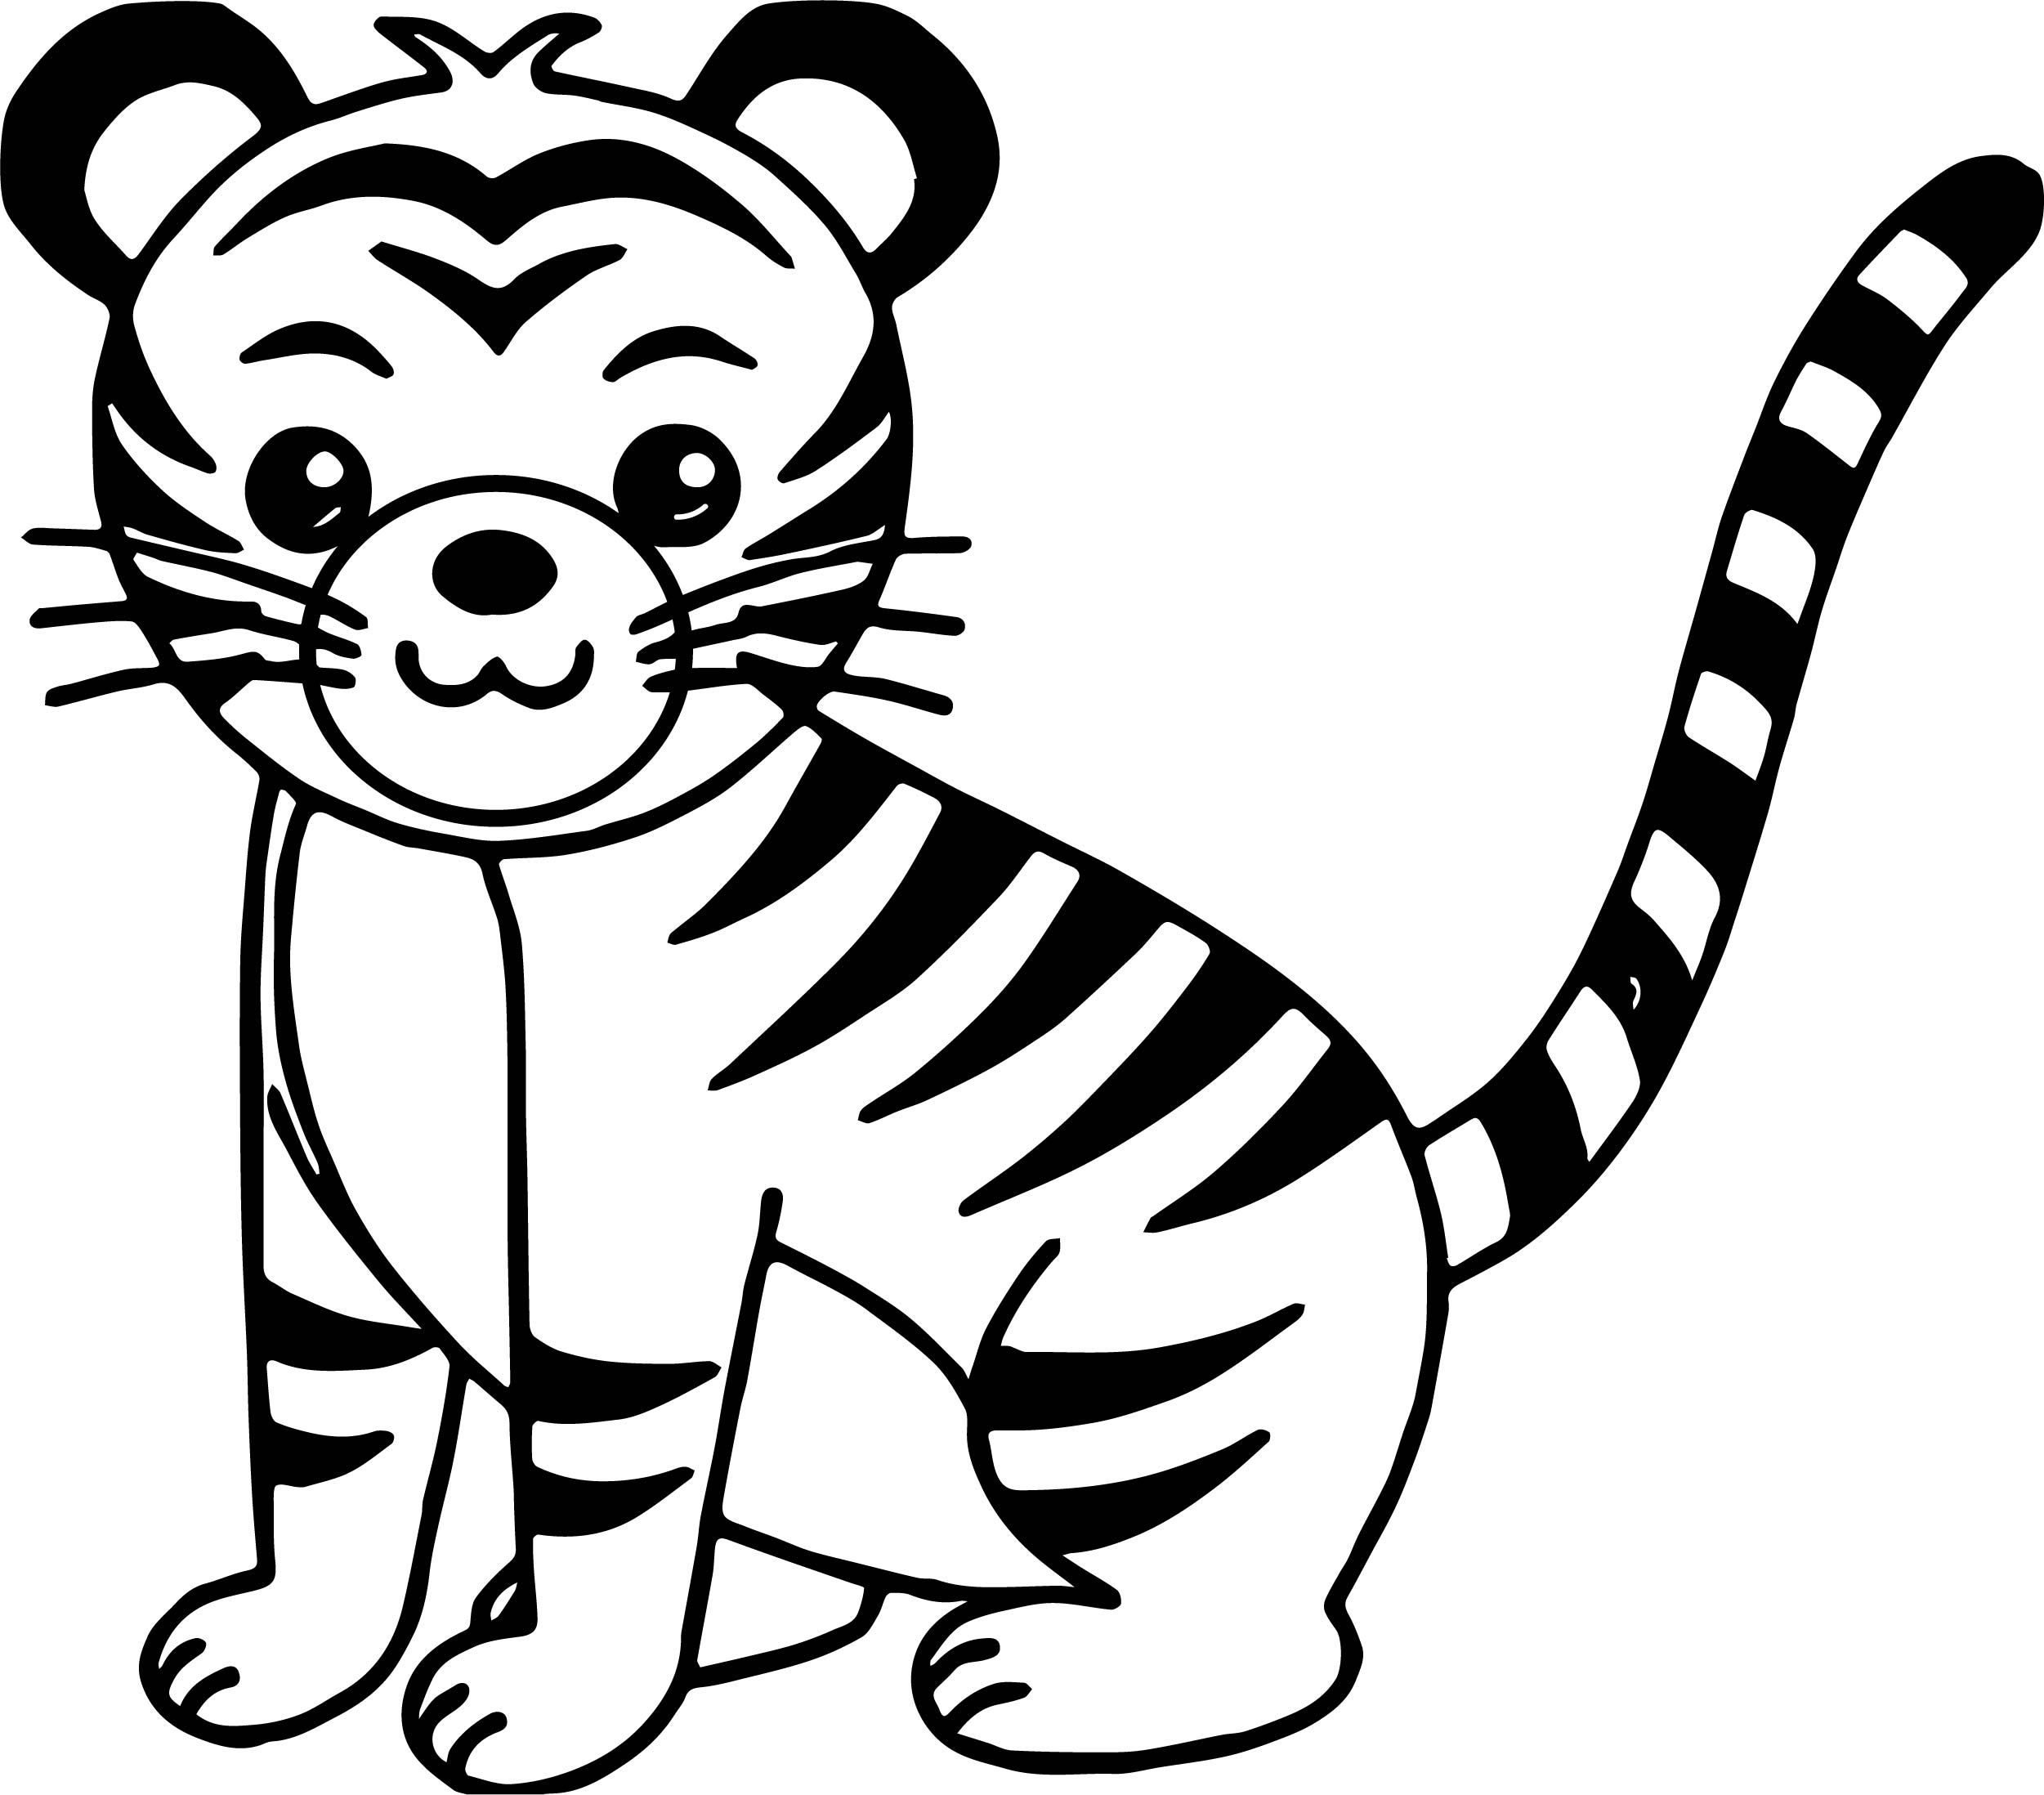 tiger coloring book tiger coloring pages free download on clipartmag coloring book tiger